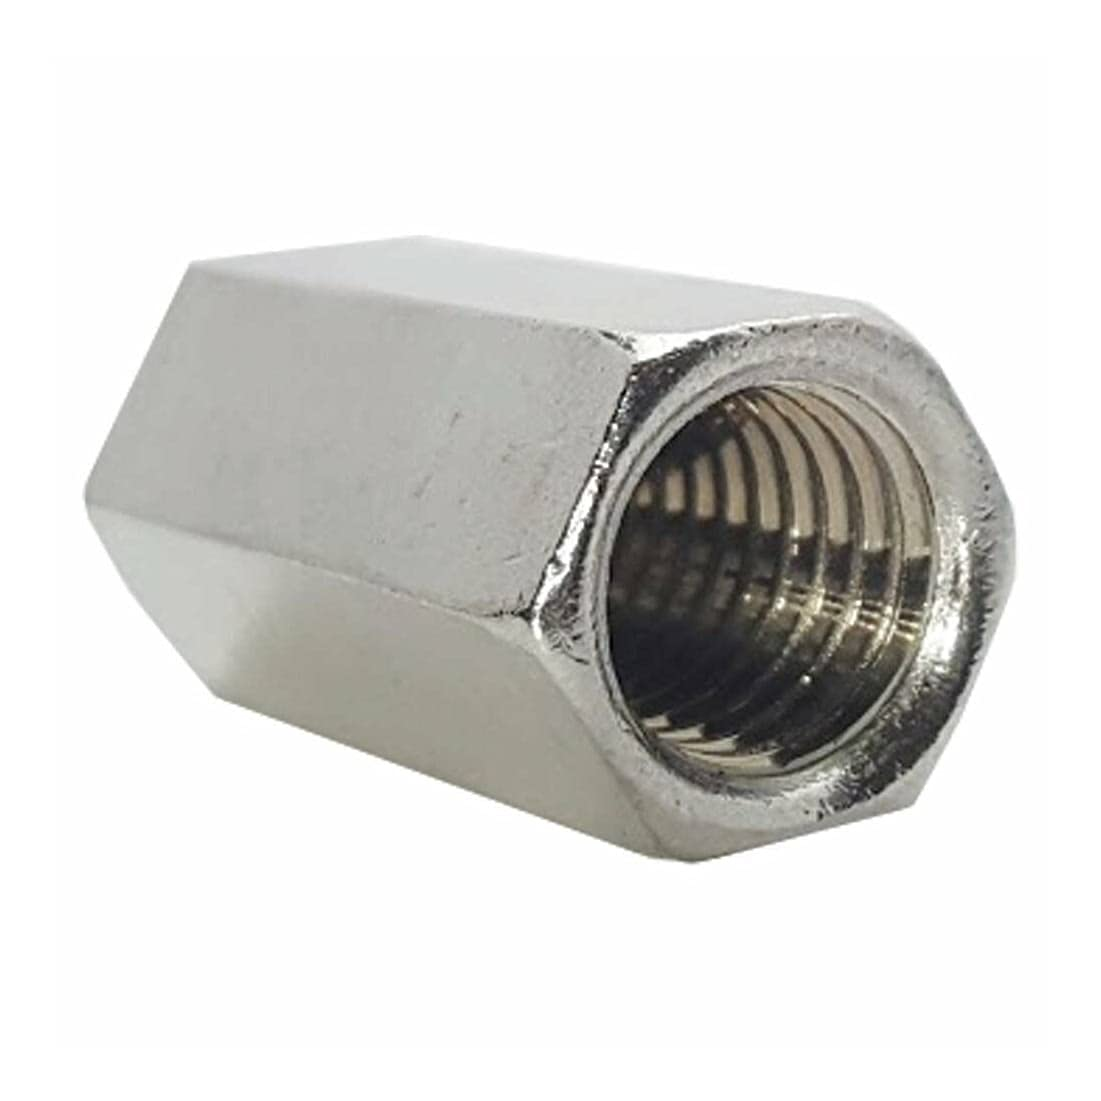 1 4-28 Rod Coupling Nuts Hex Ranking TOP16 Steel 10 Extension Selling rankings Qty Stainless